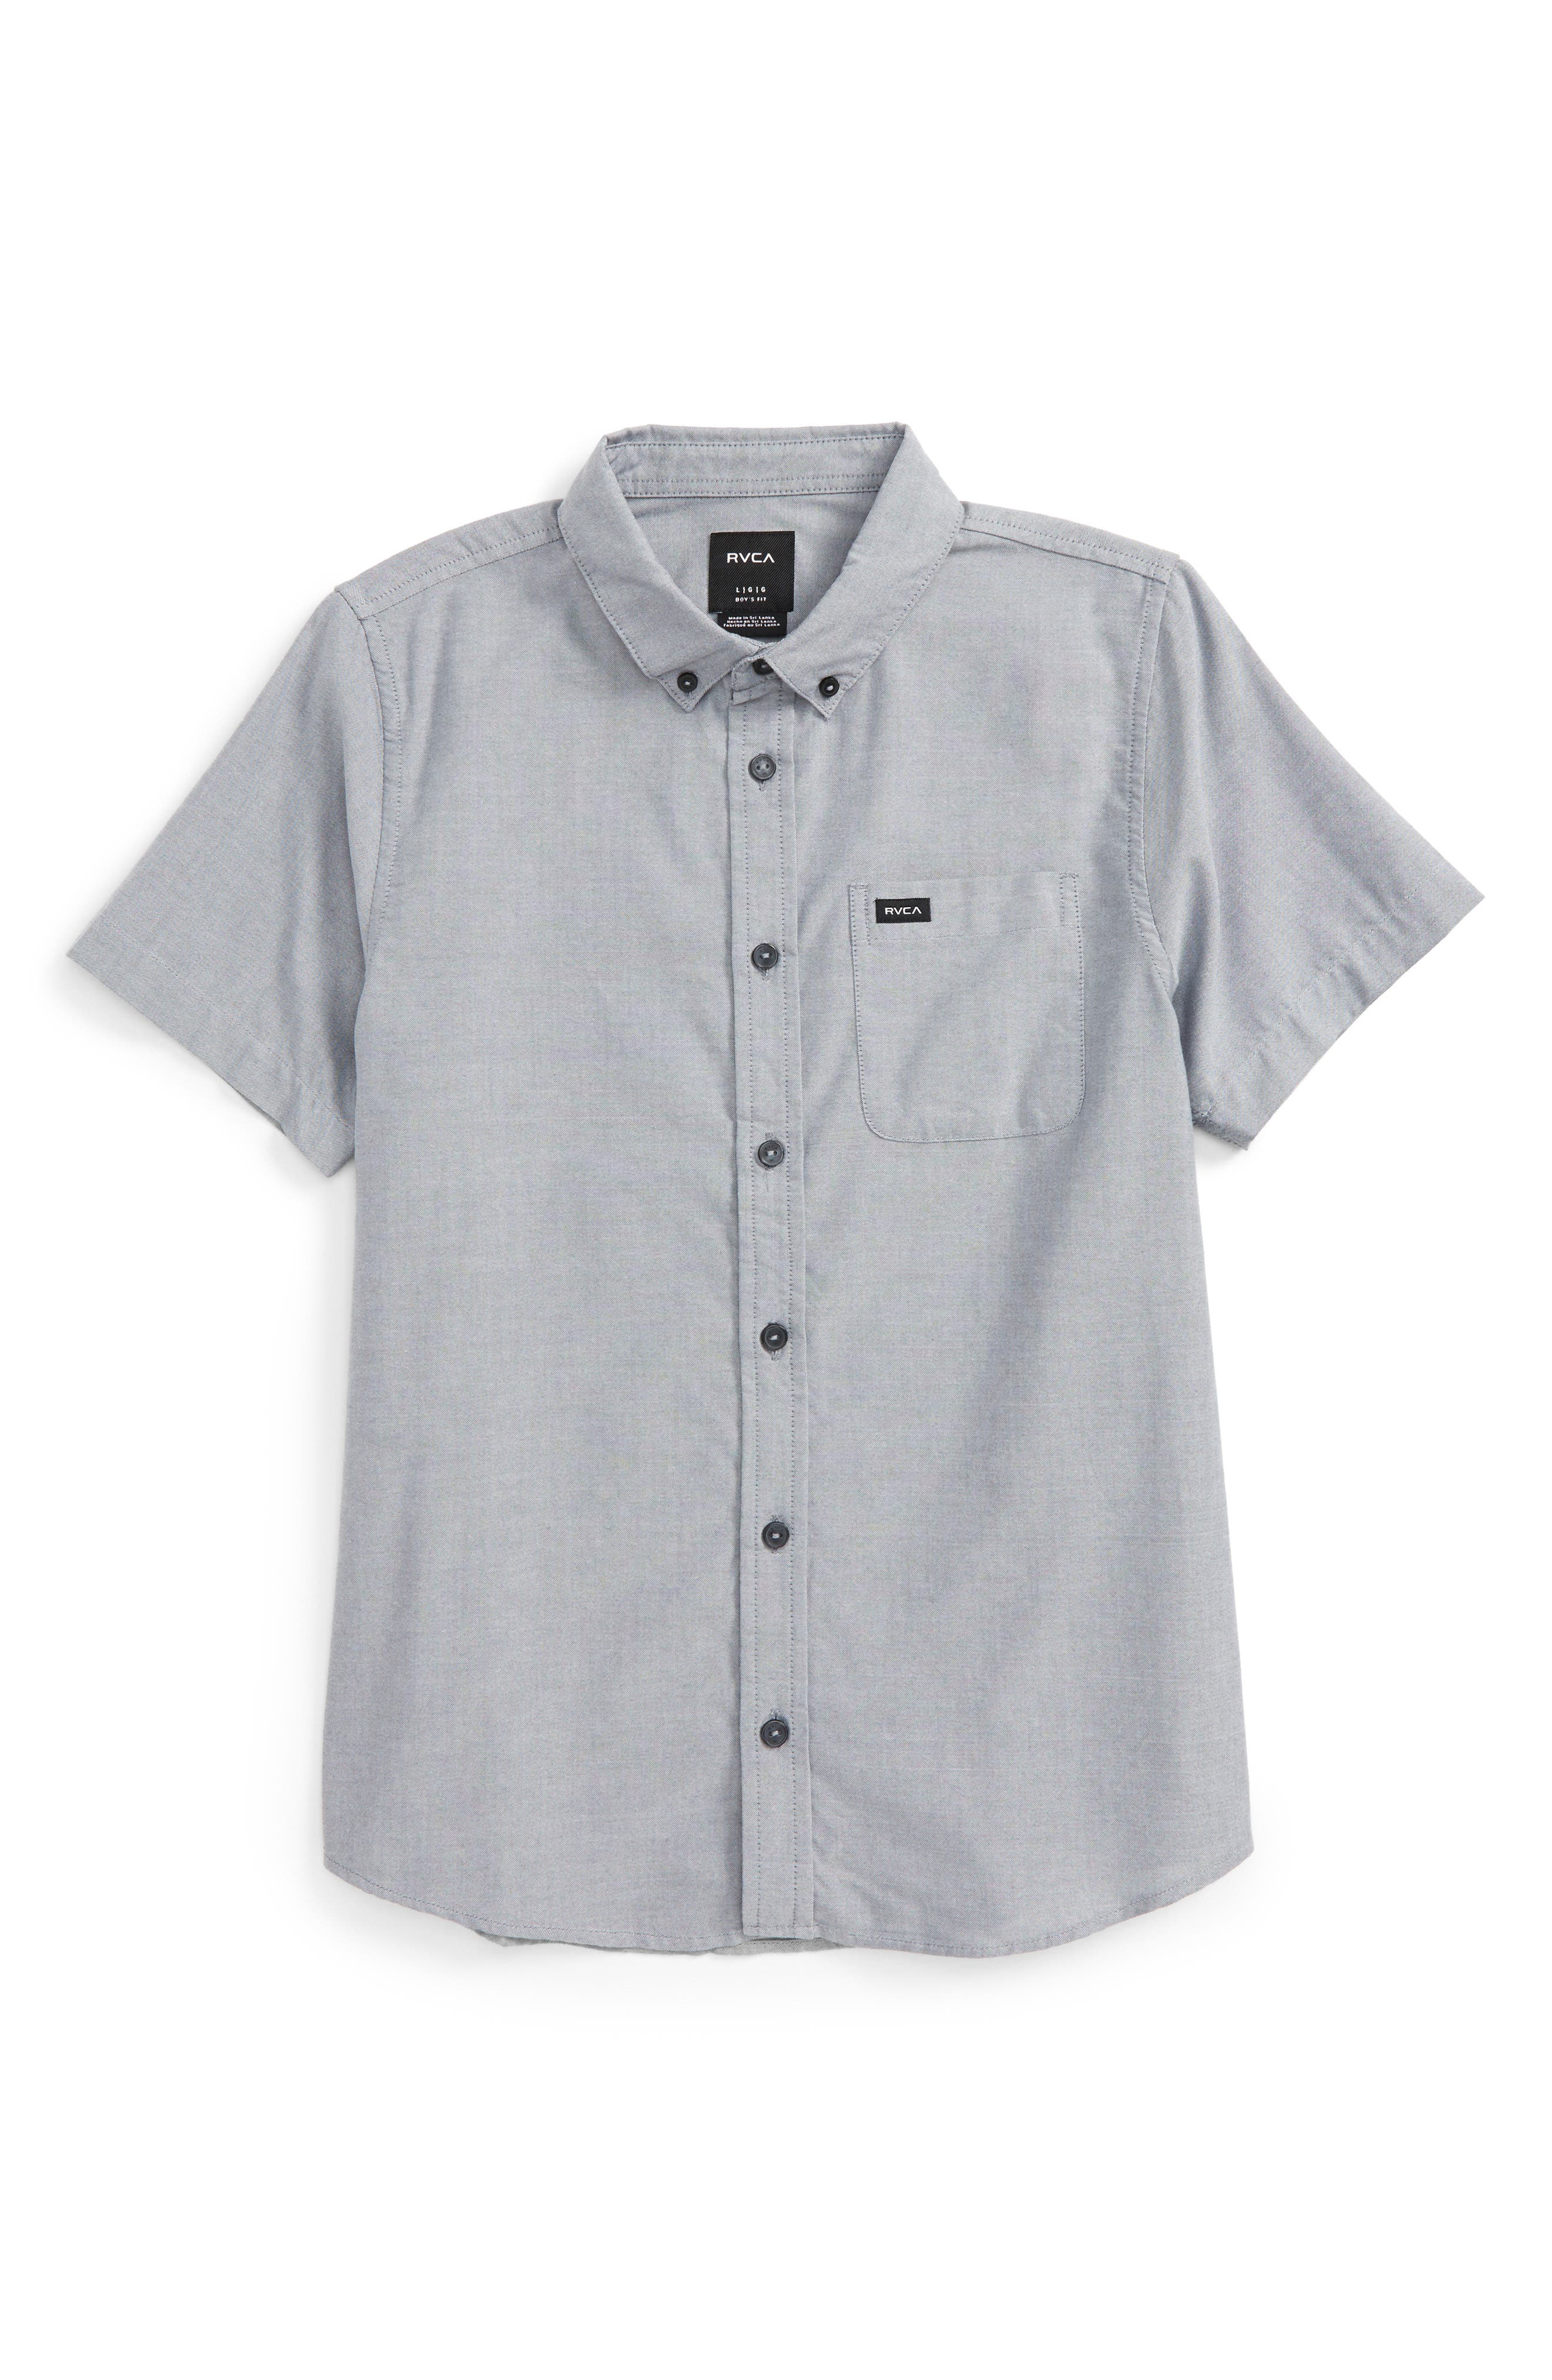 'That'll Do' Woven Shirt, Main, color, PAVEMENT